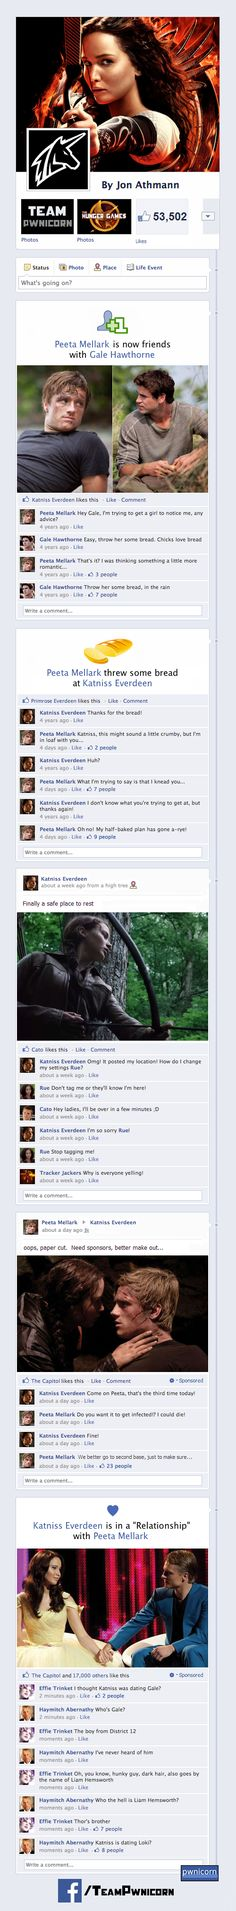 """What If... The Hunger Games Characters Were On Facebook? My fave is Haymitch's last comment: """"katniss is dating loki?"""" This is so nerdy, but I love it."""